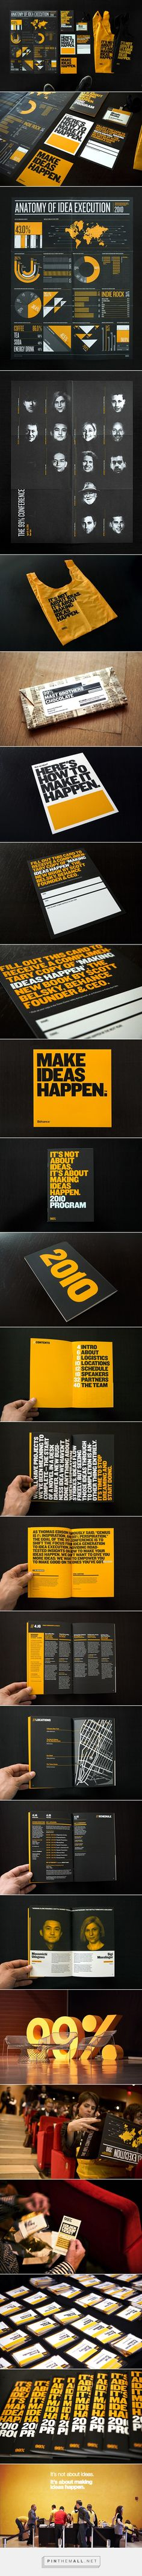 99% Conference 2010: Branded Materials on Behance - created via https://pinthemall.net